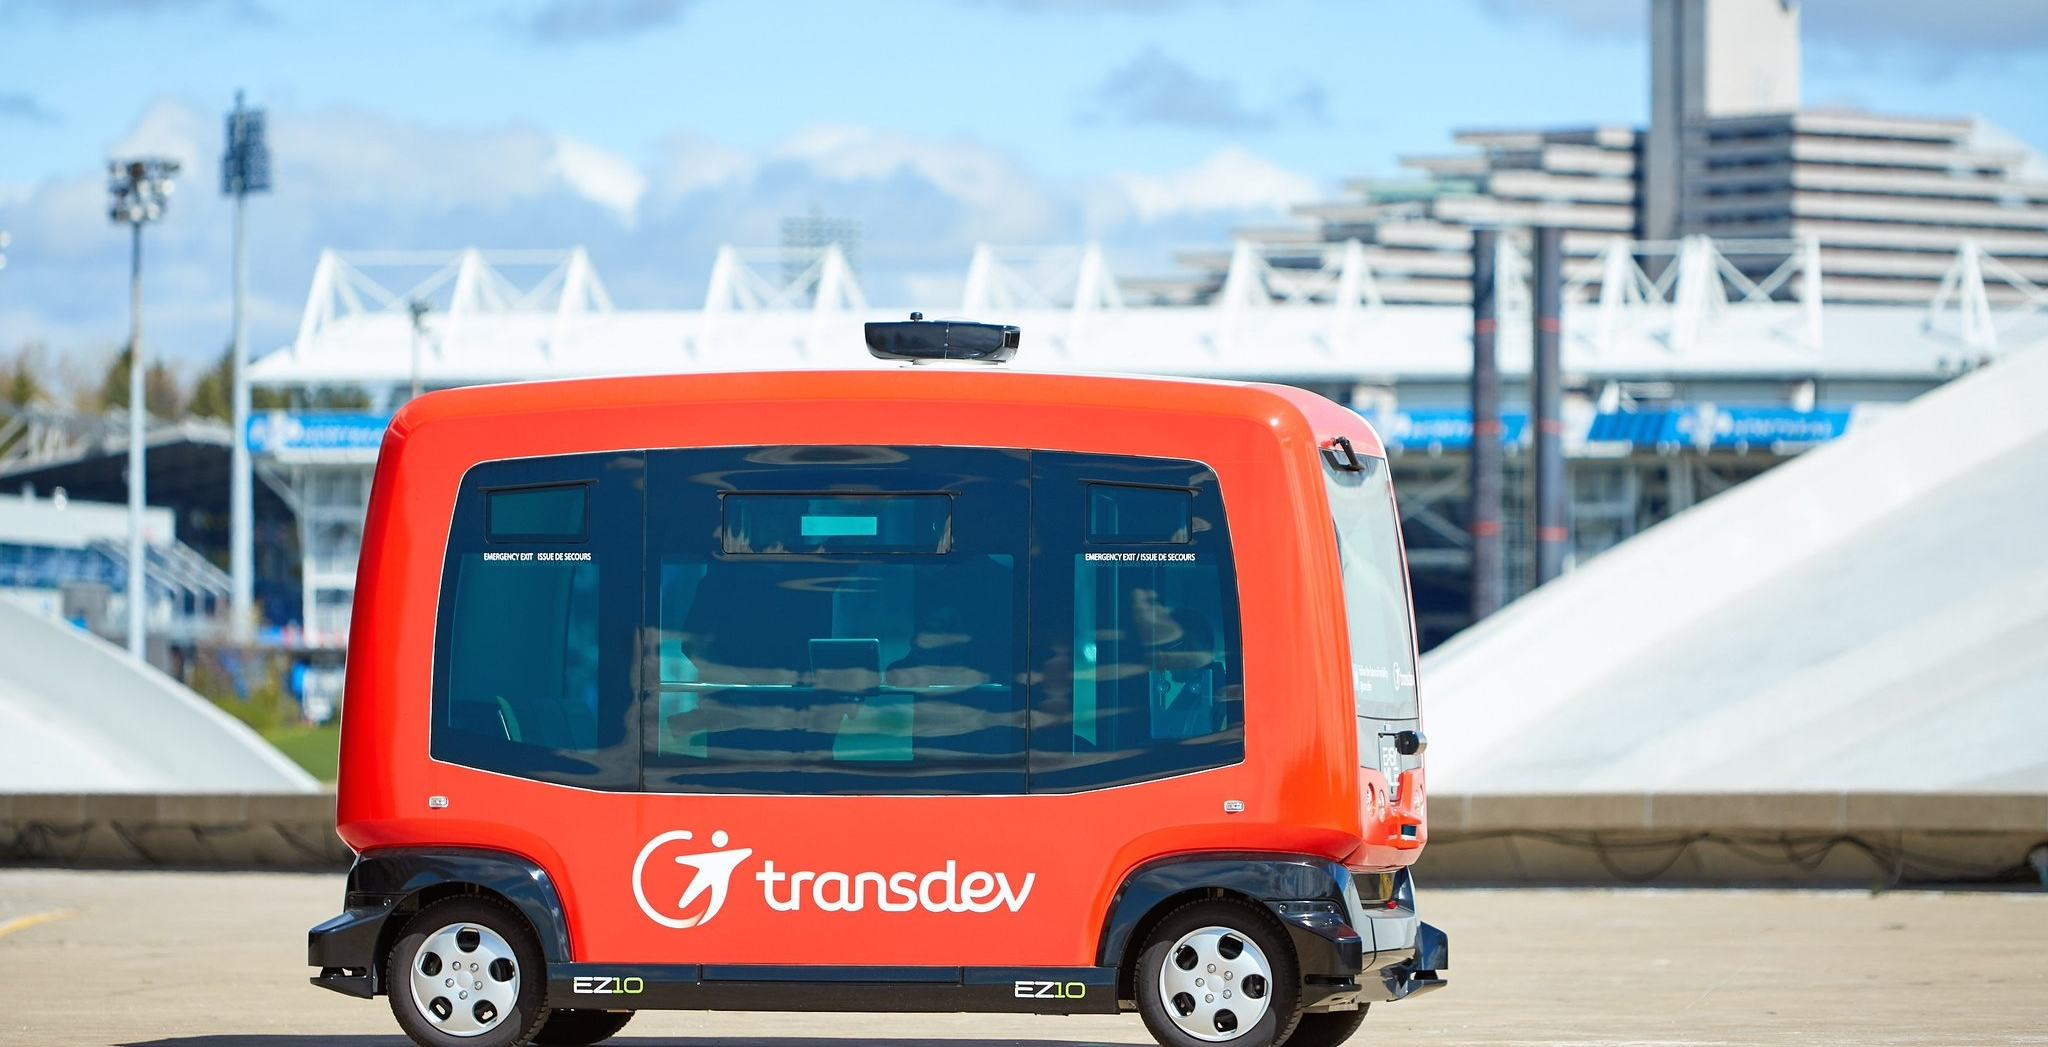 You can ride these fully automated buses for FREE in Montreal until August